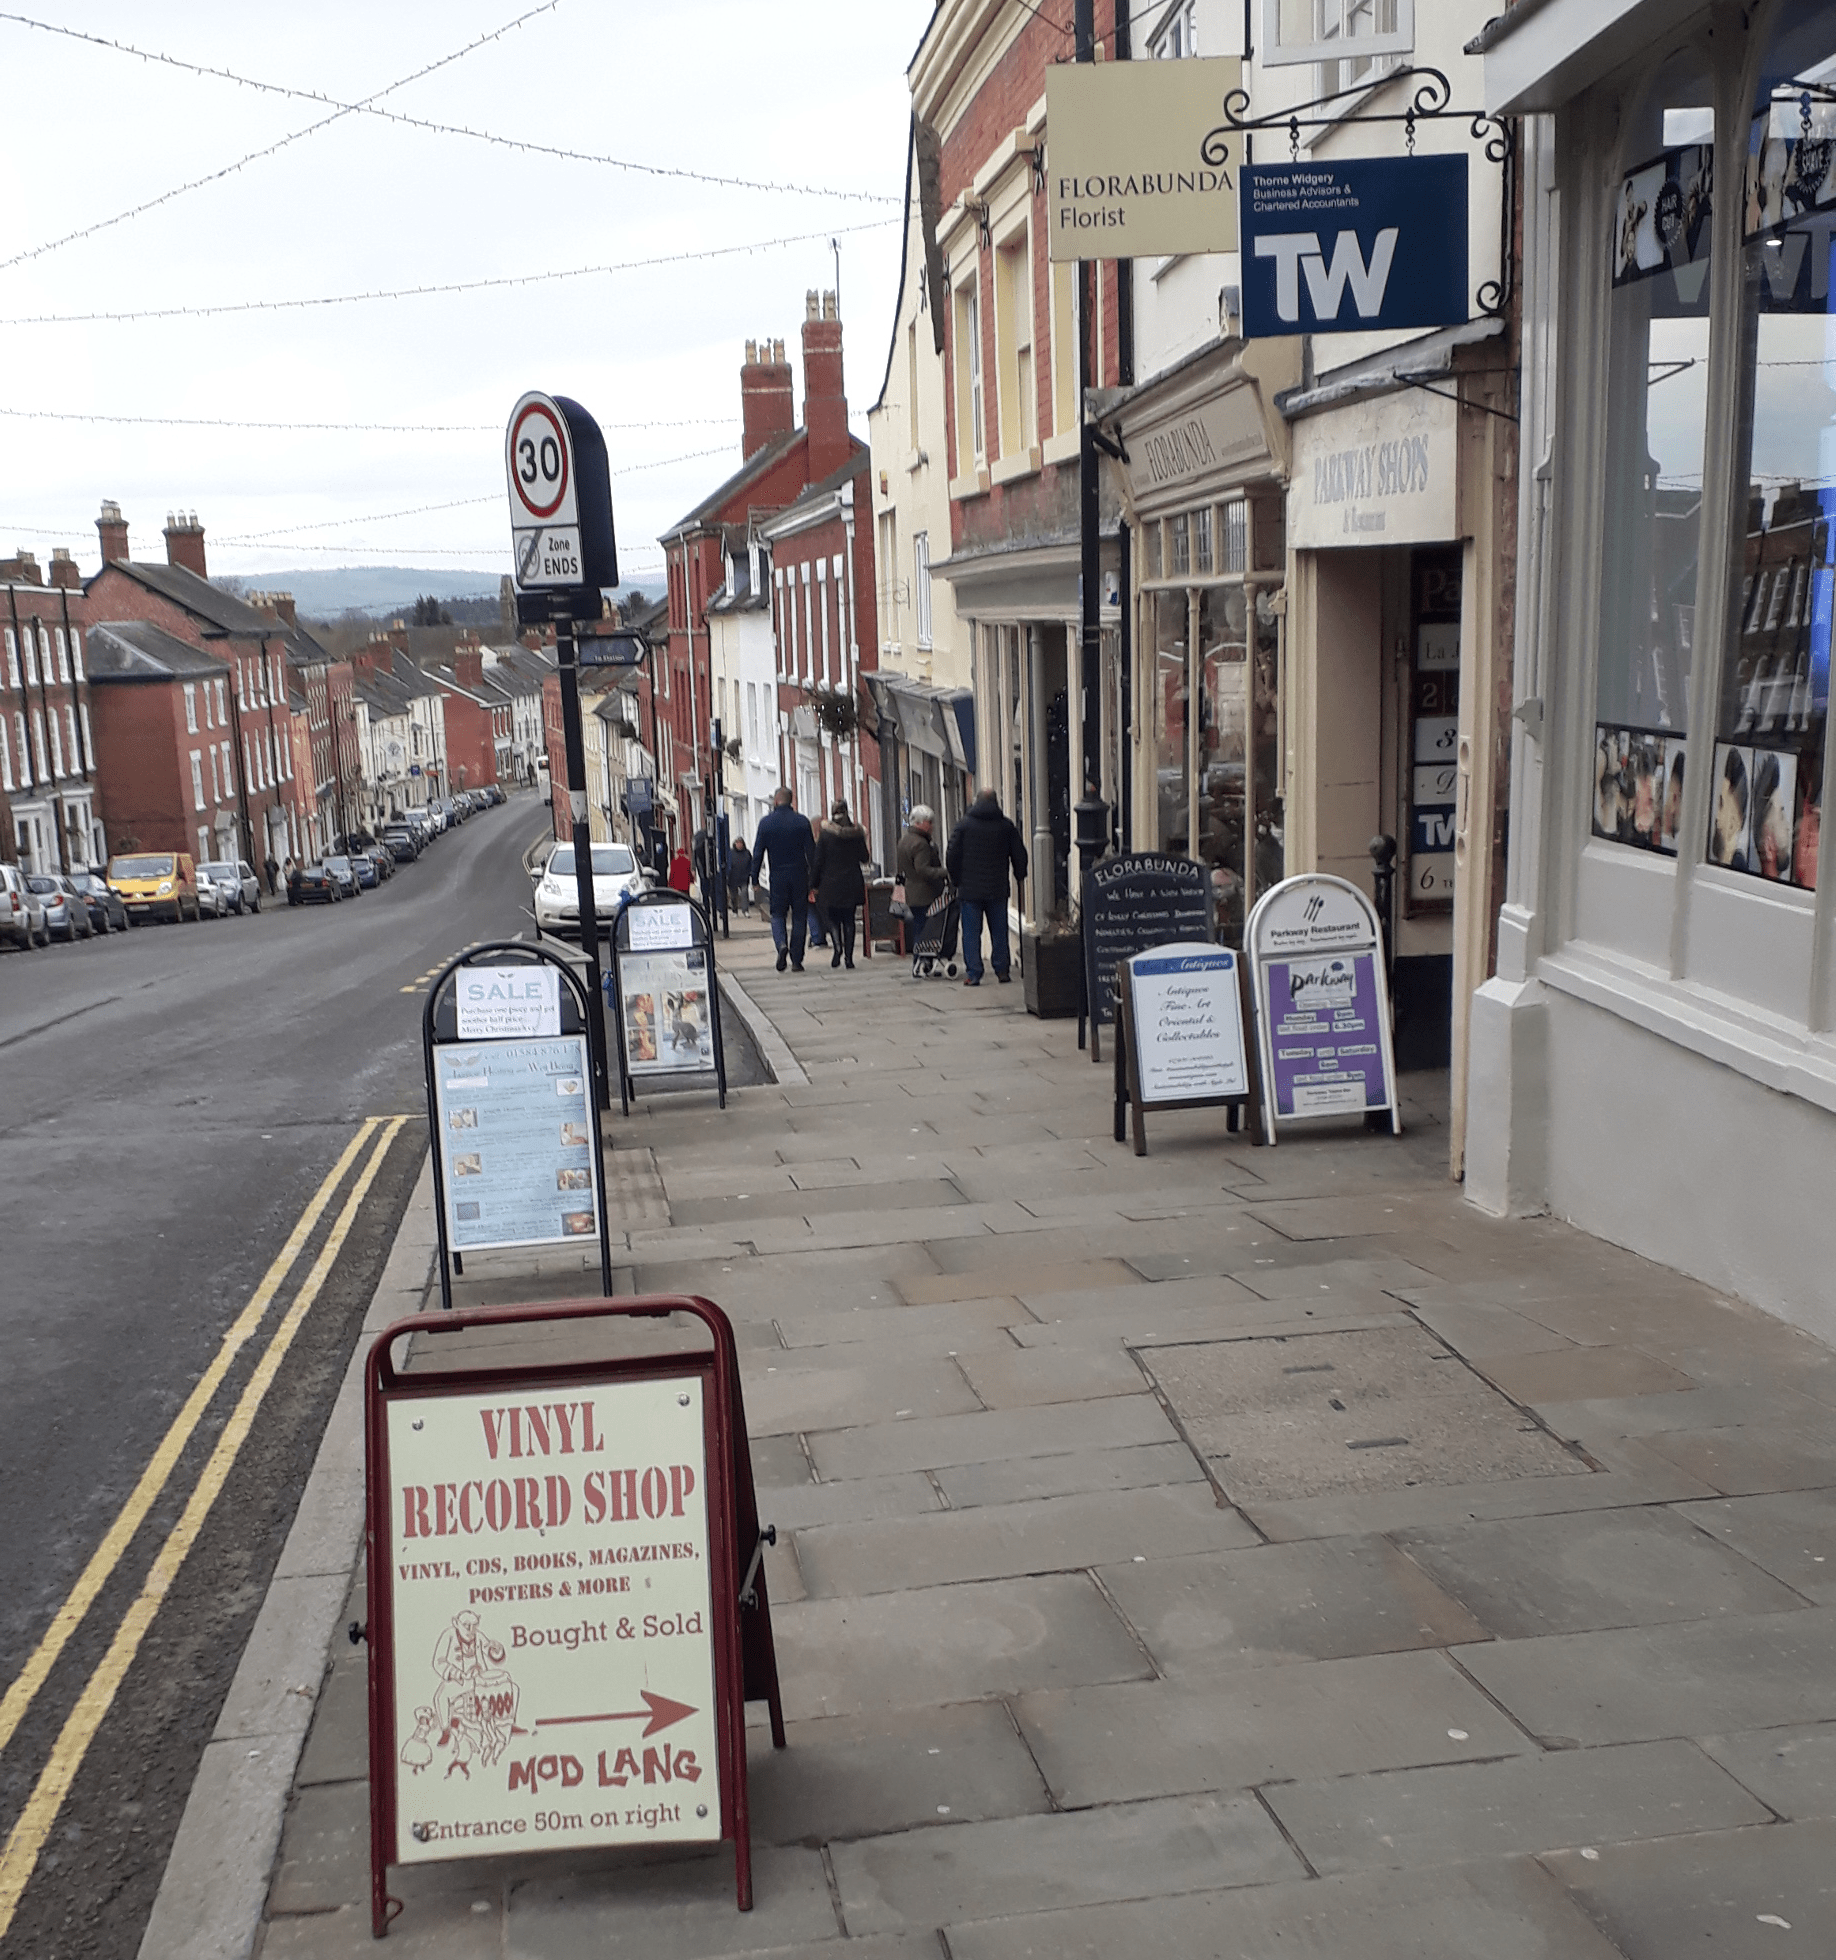 Ludlow is a town of one hundred A-Boards – should we make retailers pay for using the pavement like Liverpool?